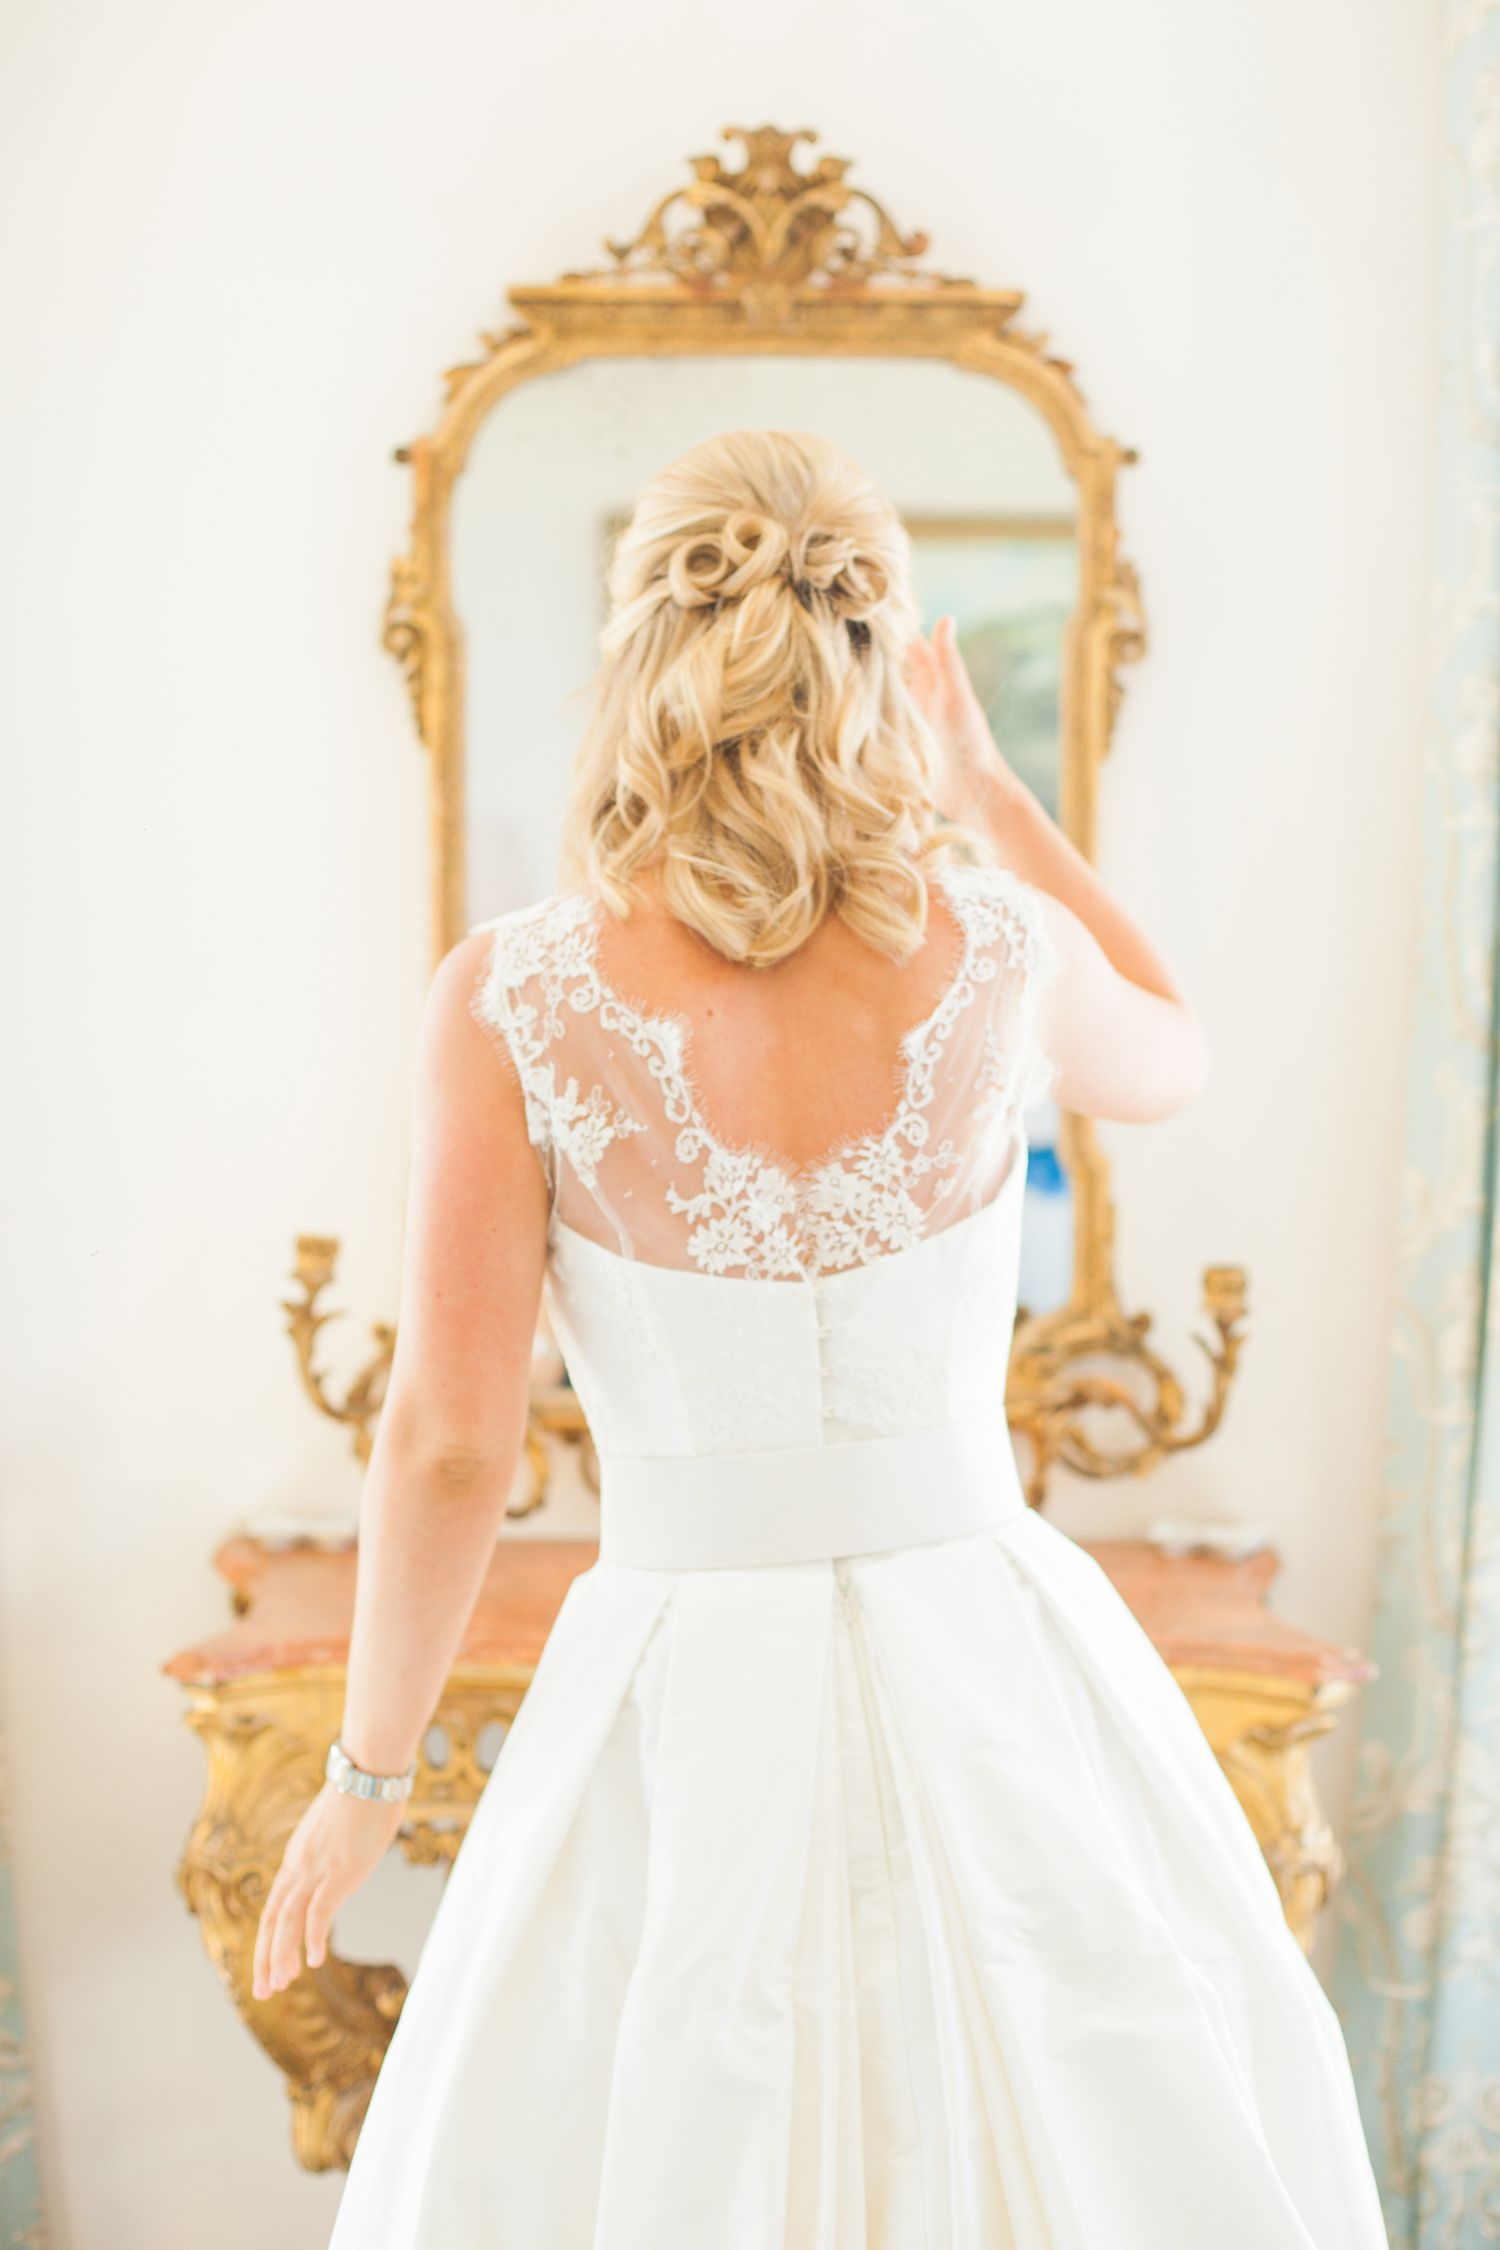 Bridal Styling from Jo Irving | Hair inspiration and Bridal hair